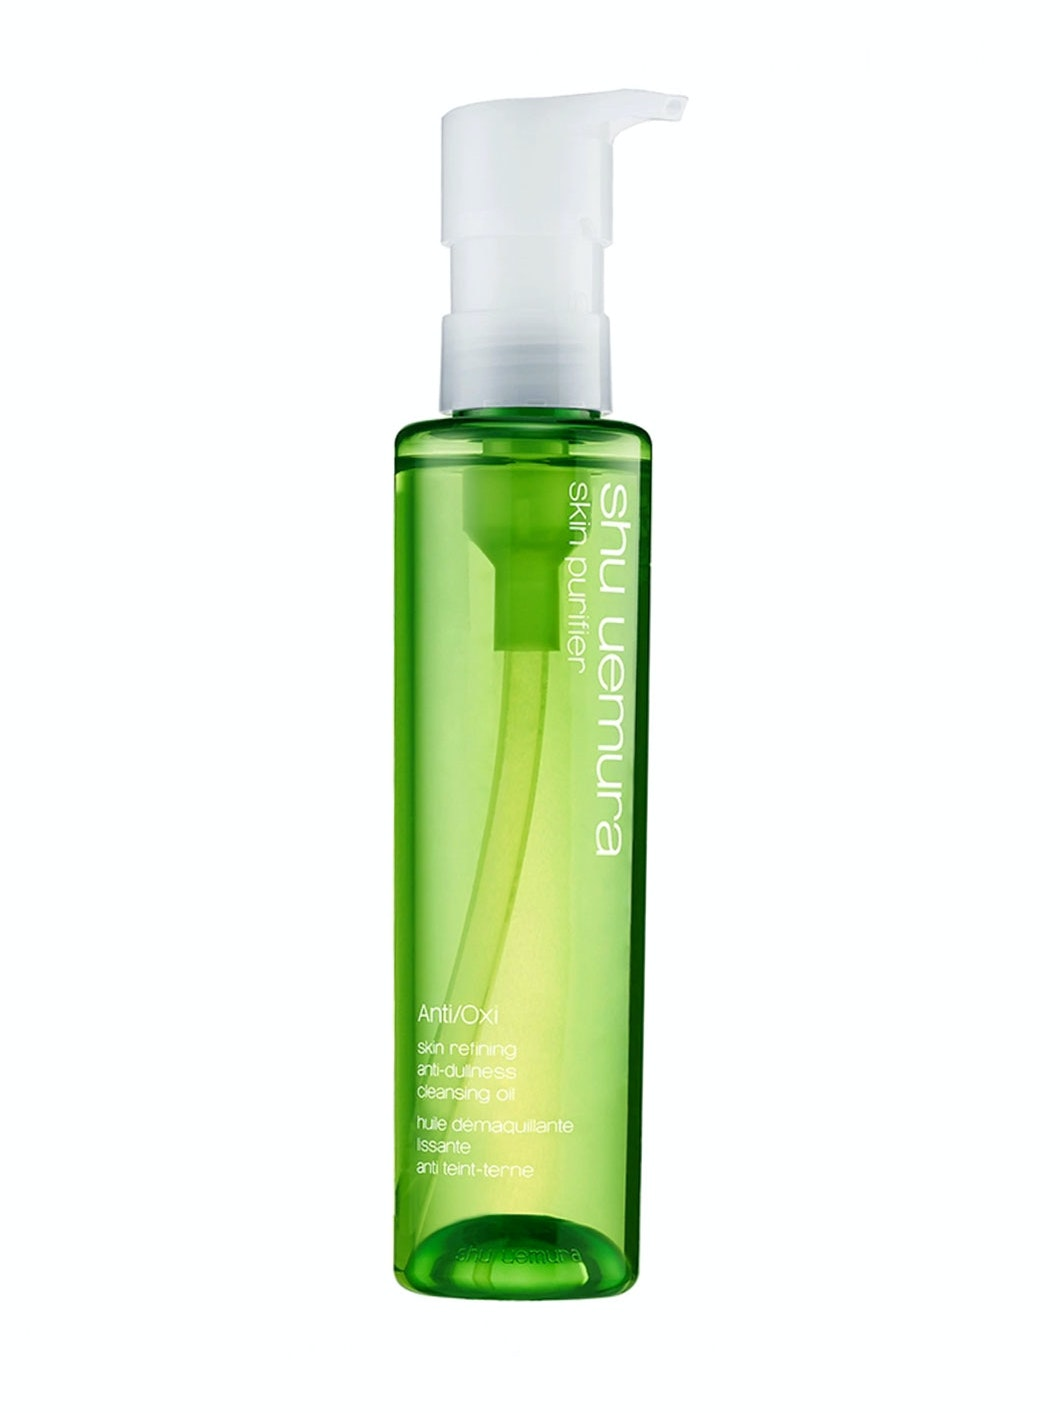 Anti/Oxi+ Pollutant and Dullness Clarifying Cleansing Oil